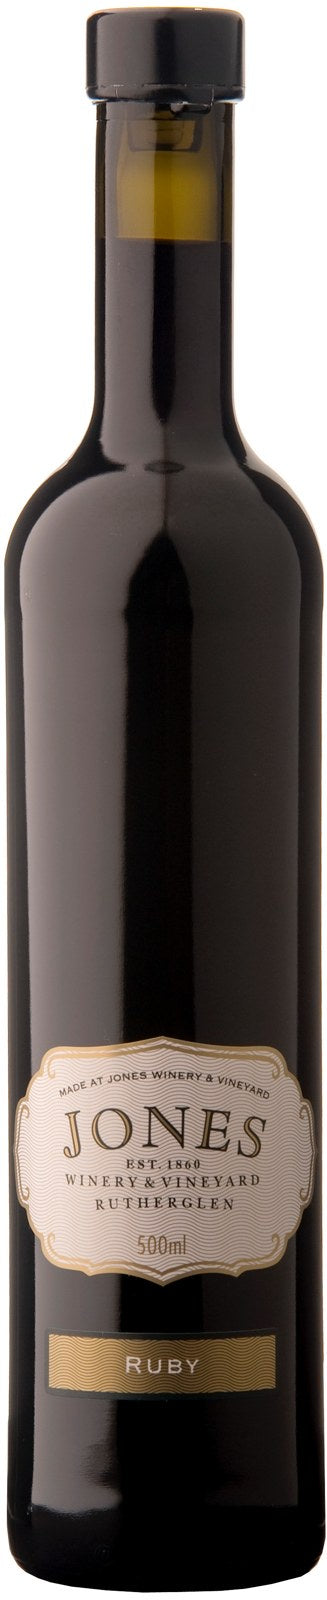 Jones Winery & Vineyard Ruby NV 6 x 500mL